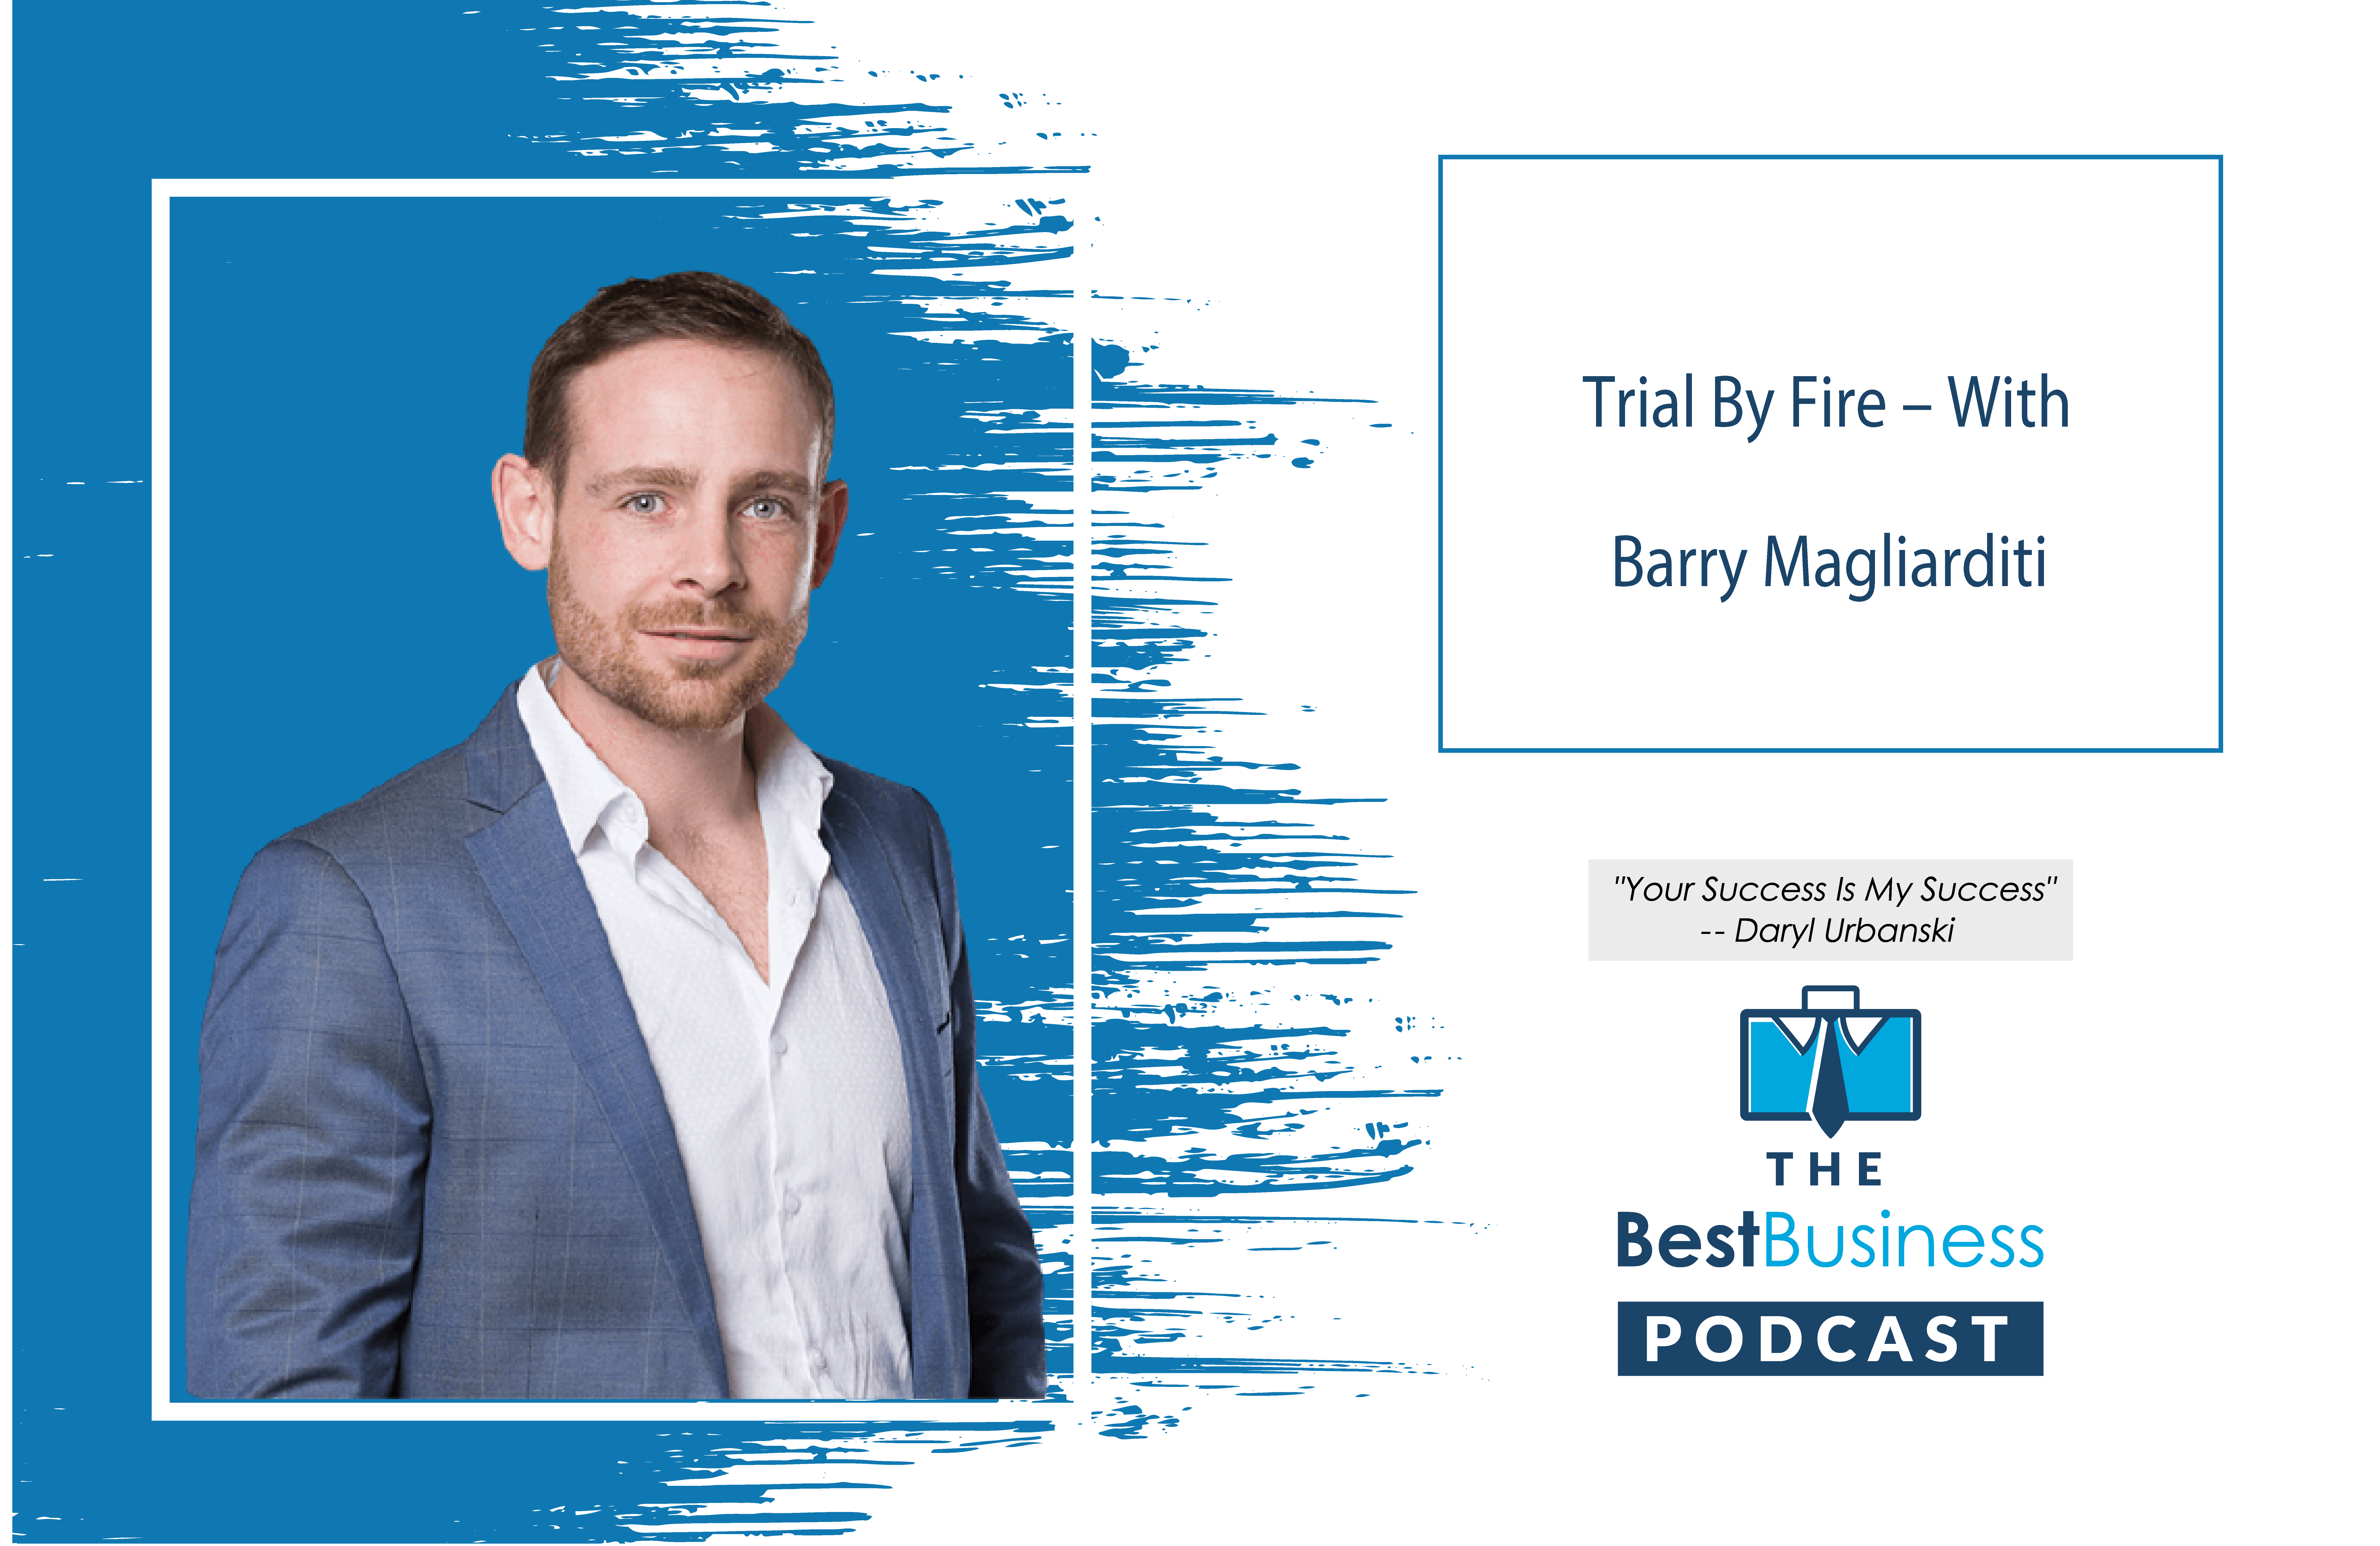 Barry Magliarditi, Business coaching services